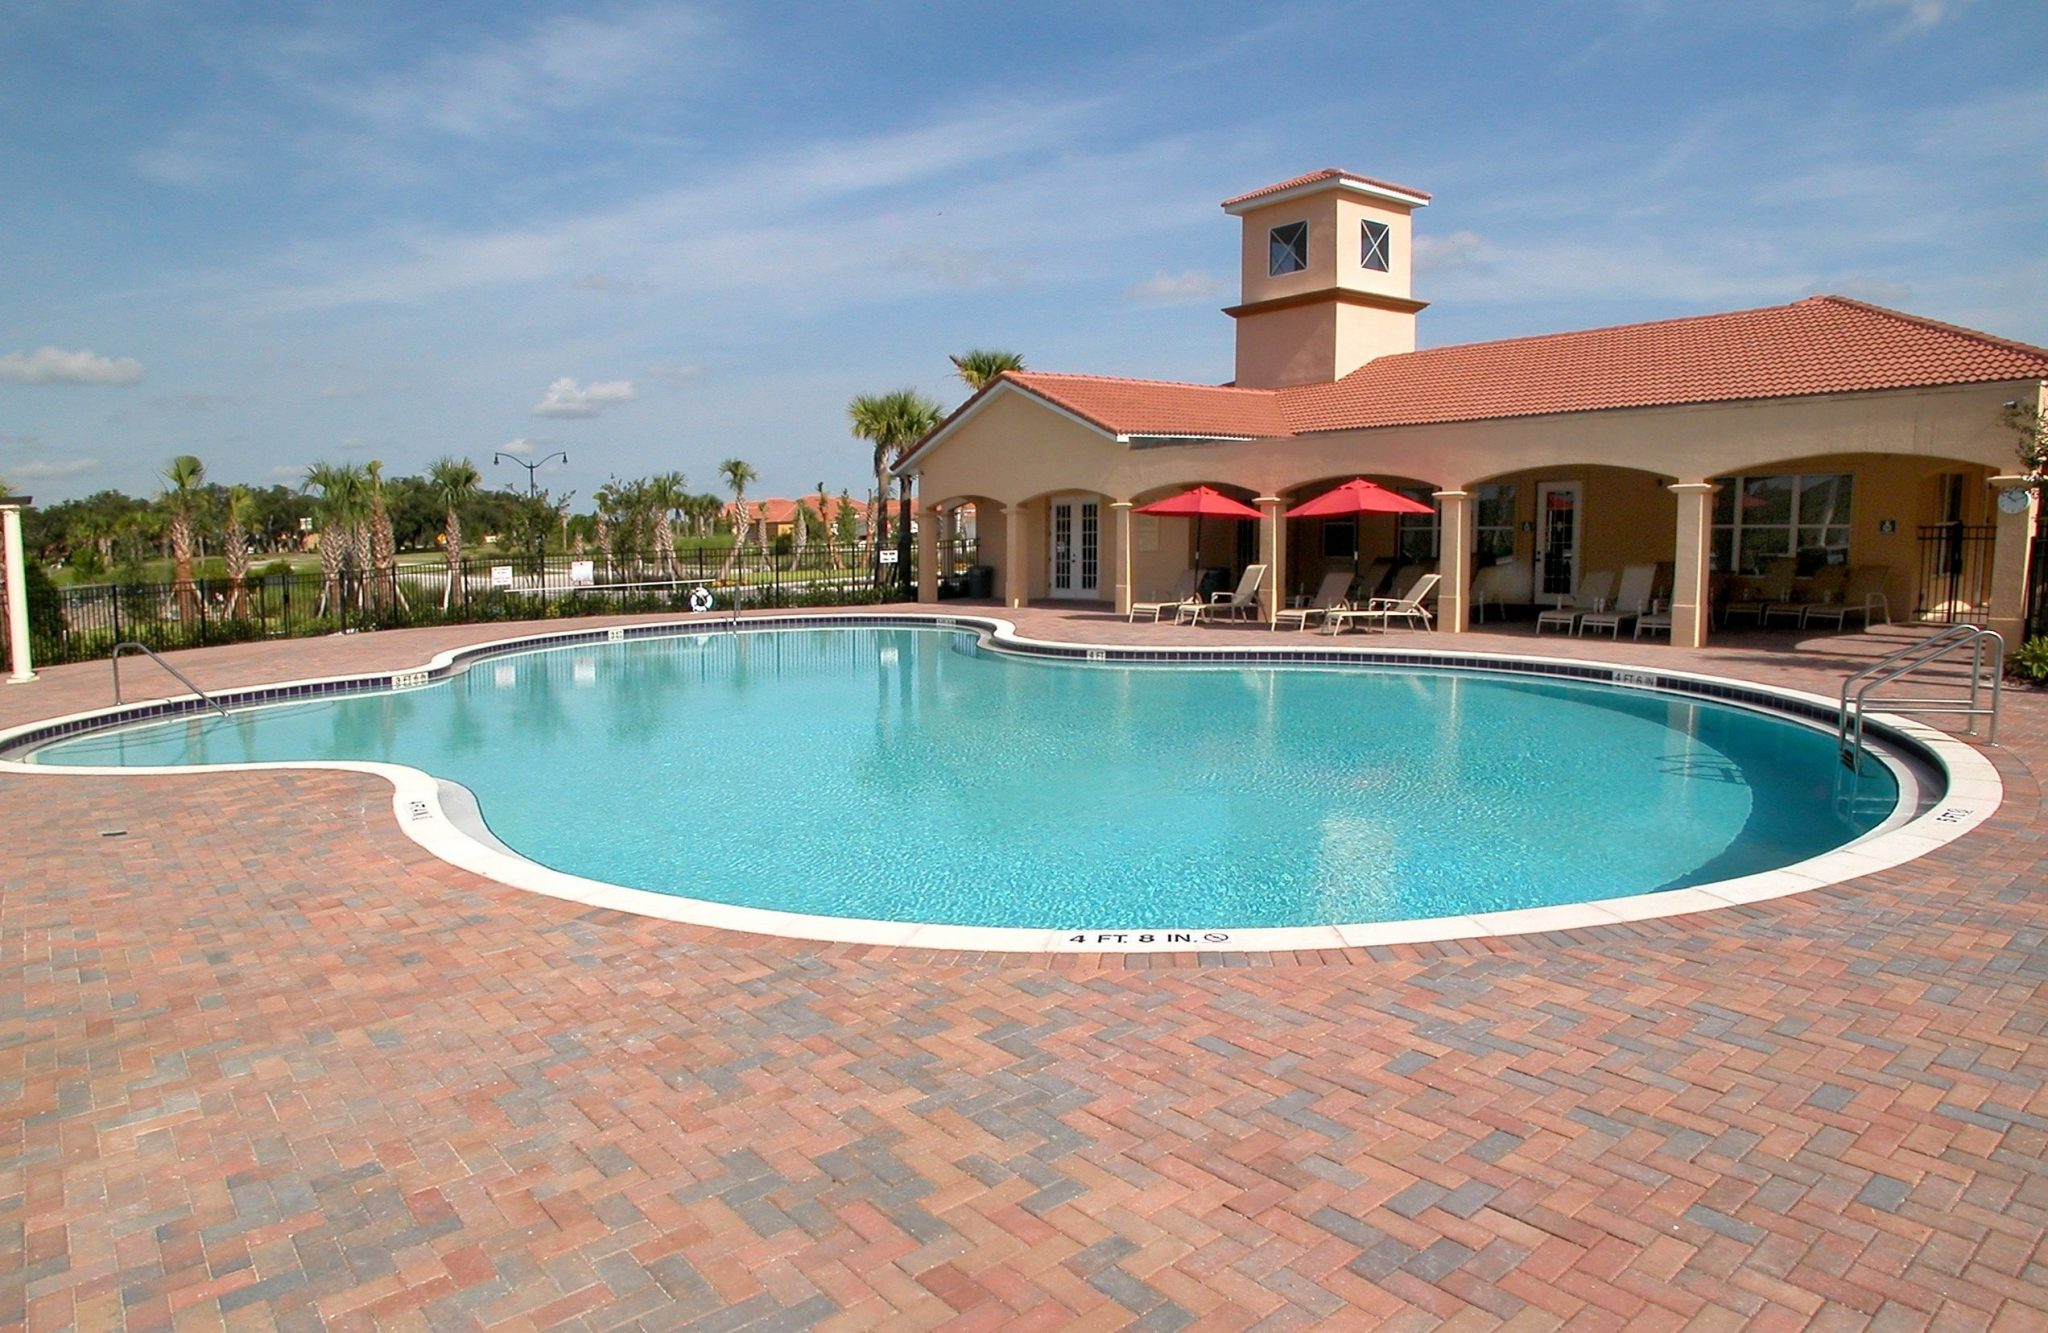 Rey Homes Town Homes and New Homes Community Pool in Kissimmee Florida